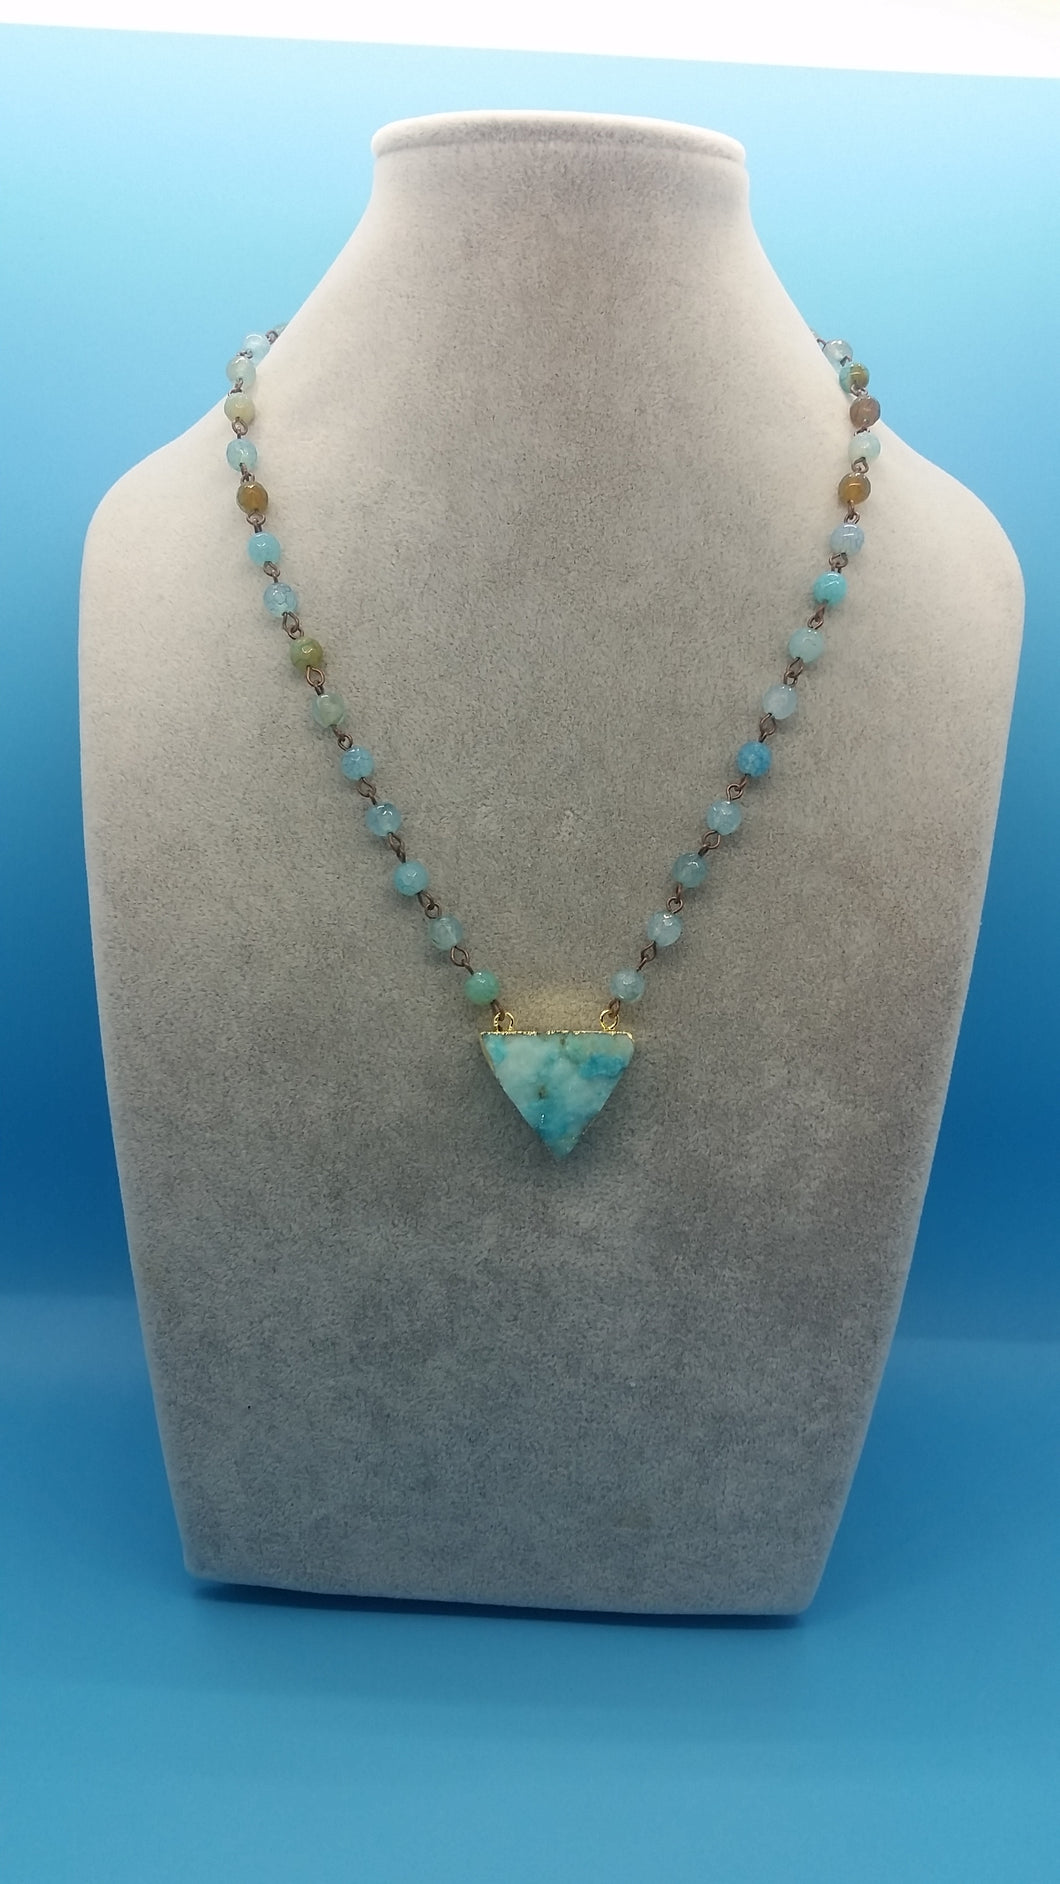 Blue Agate chain with Druzy pendant necklace